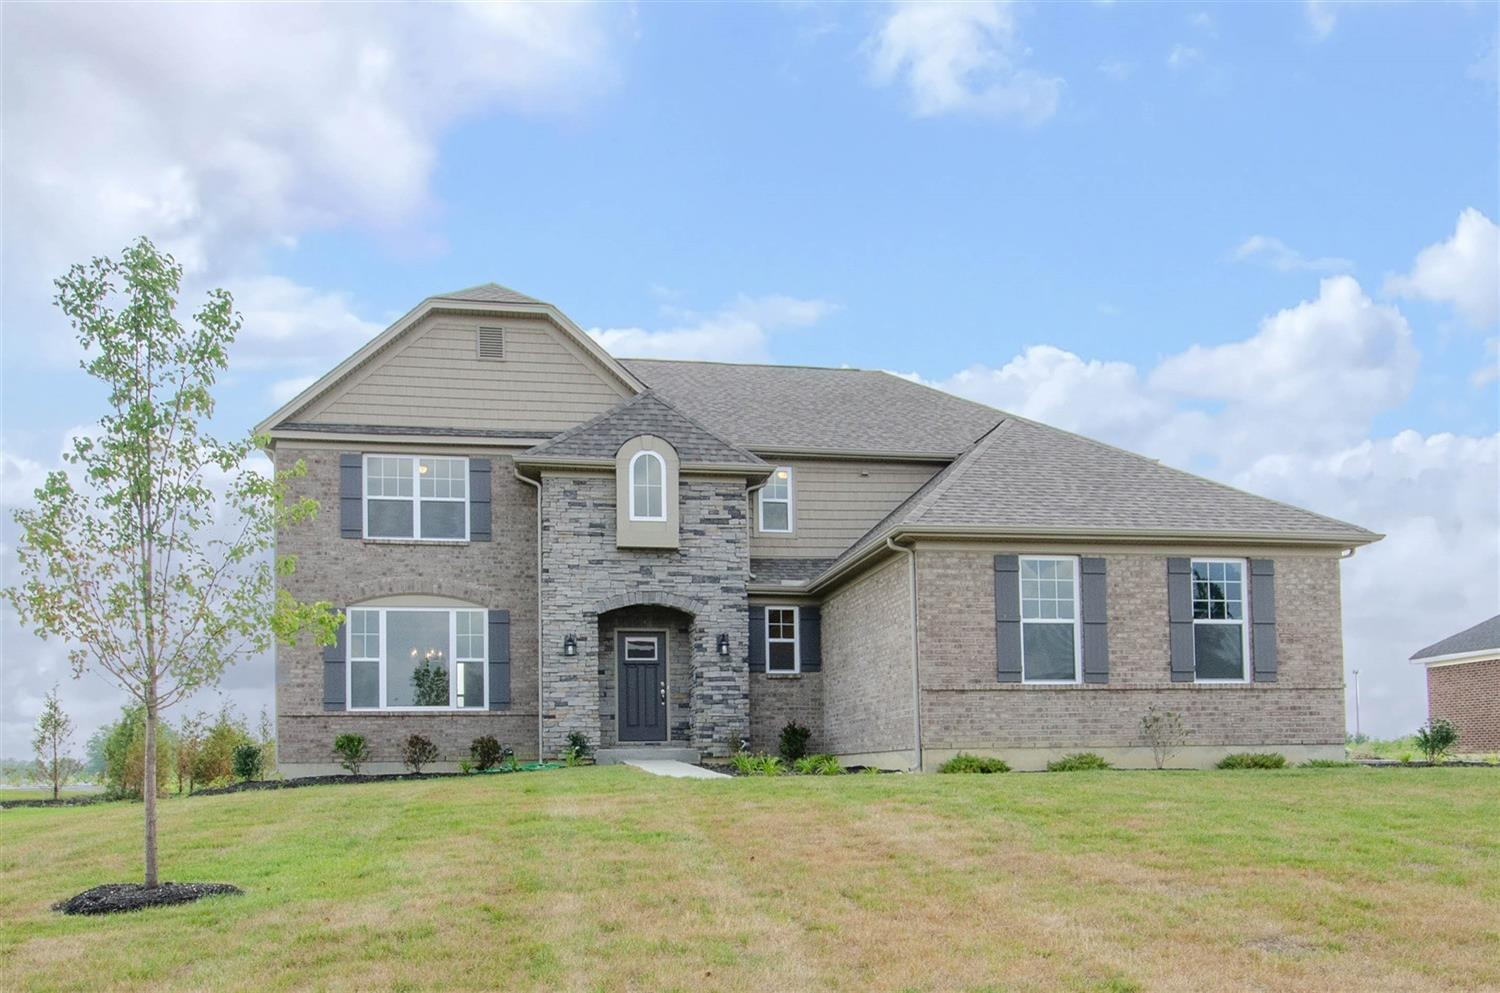 Property for sale at 5925 Tilbury Trail, Liberty Twp,  Ohio 45011